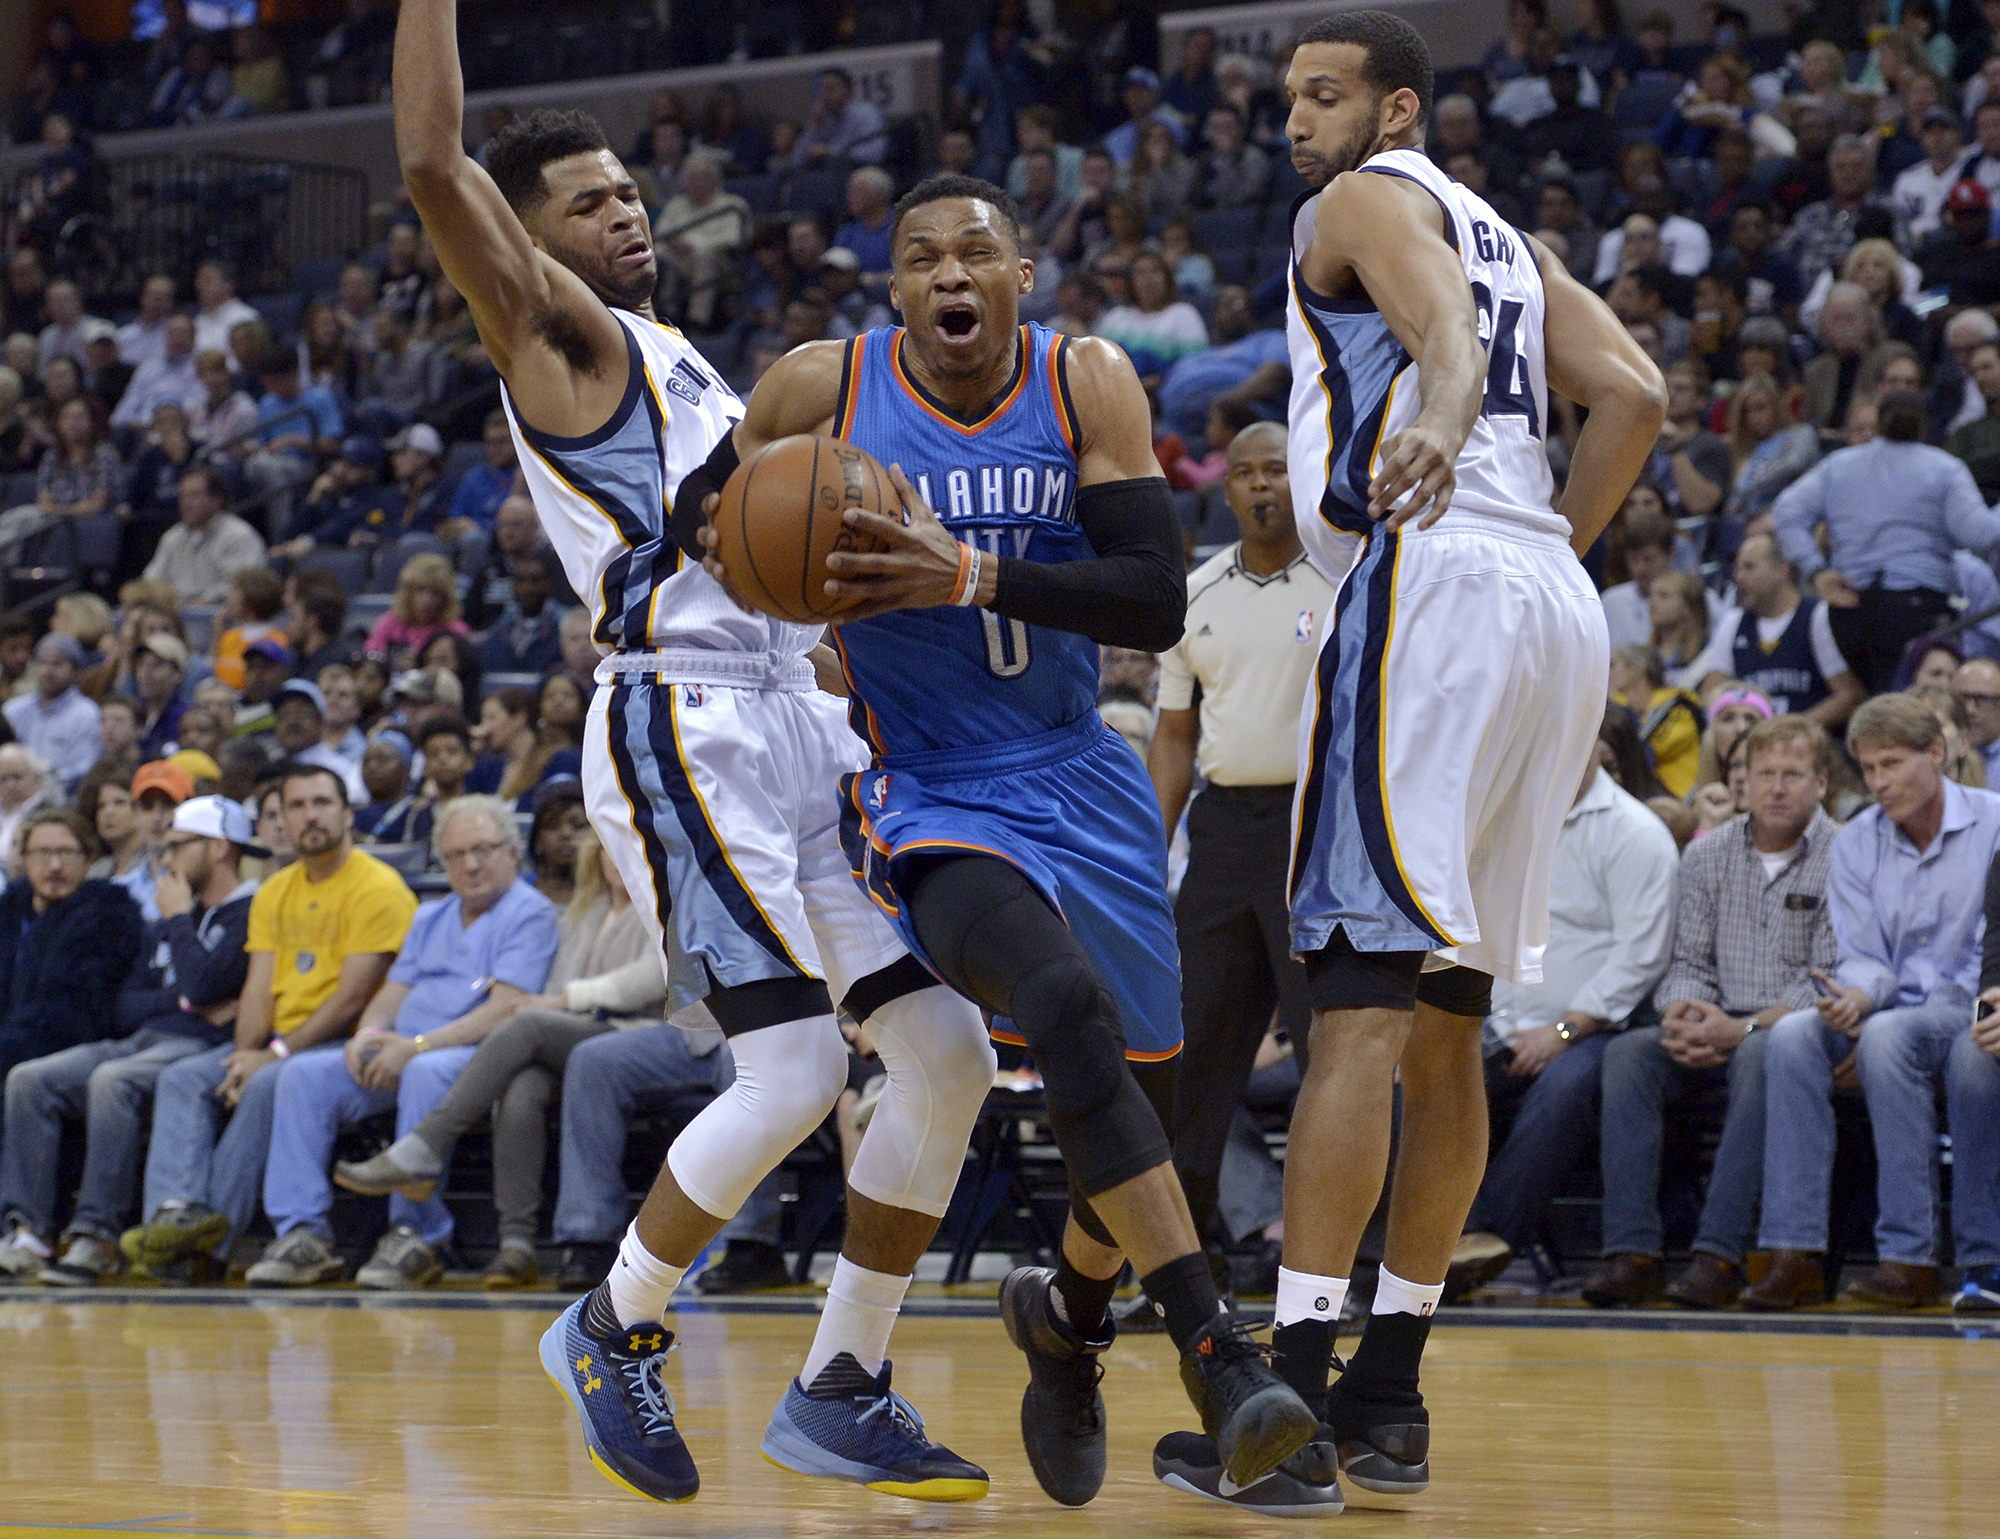 Oklahoma City Thunder guard Russell Westbrook (0) drives between Memphis Grizzlies guard Andrew Harrison, left, and forward Brandan Wright during the first half of an NBA basketball game Wednesday, April 5, 2017, in Memphis, Tenn. (Brandon Dill/AP)